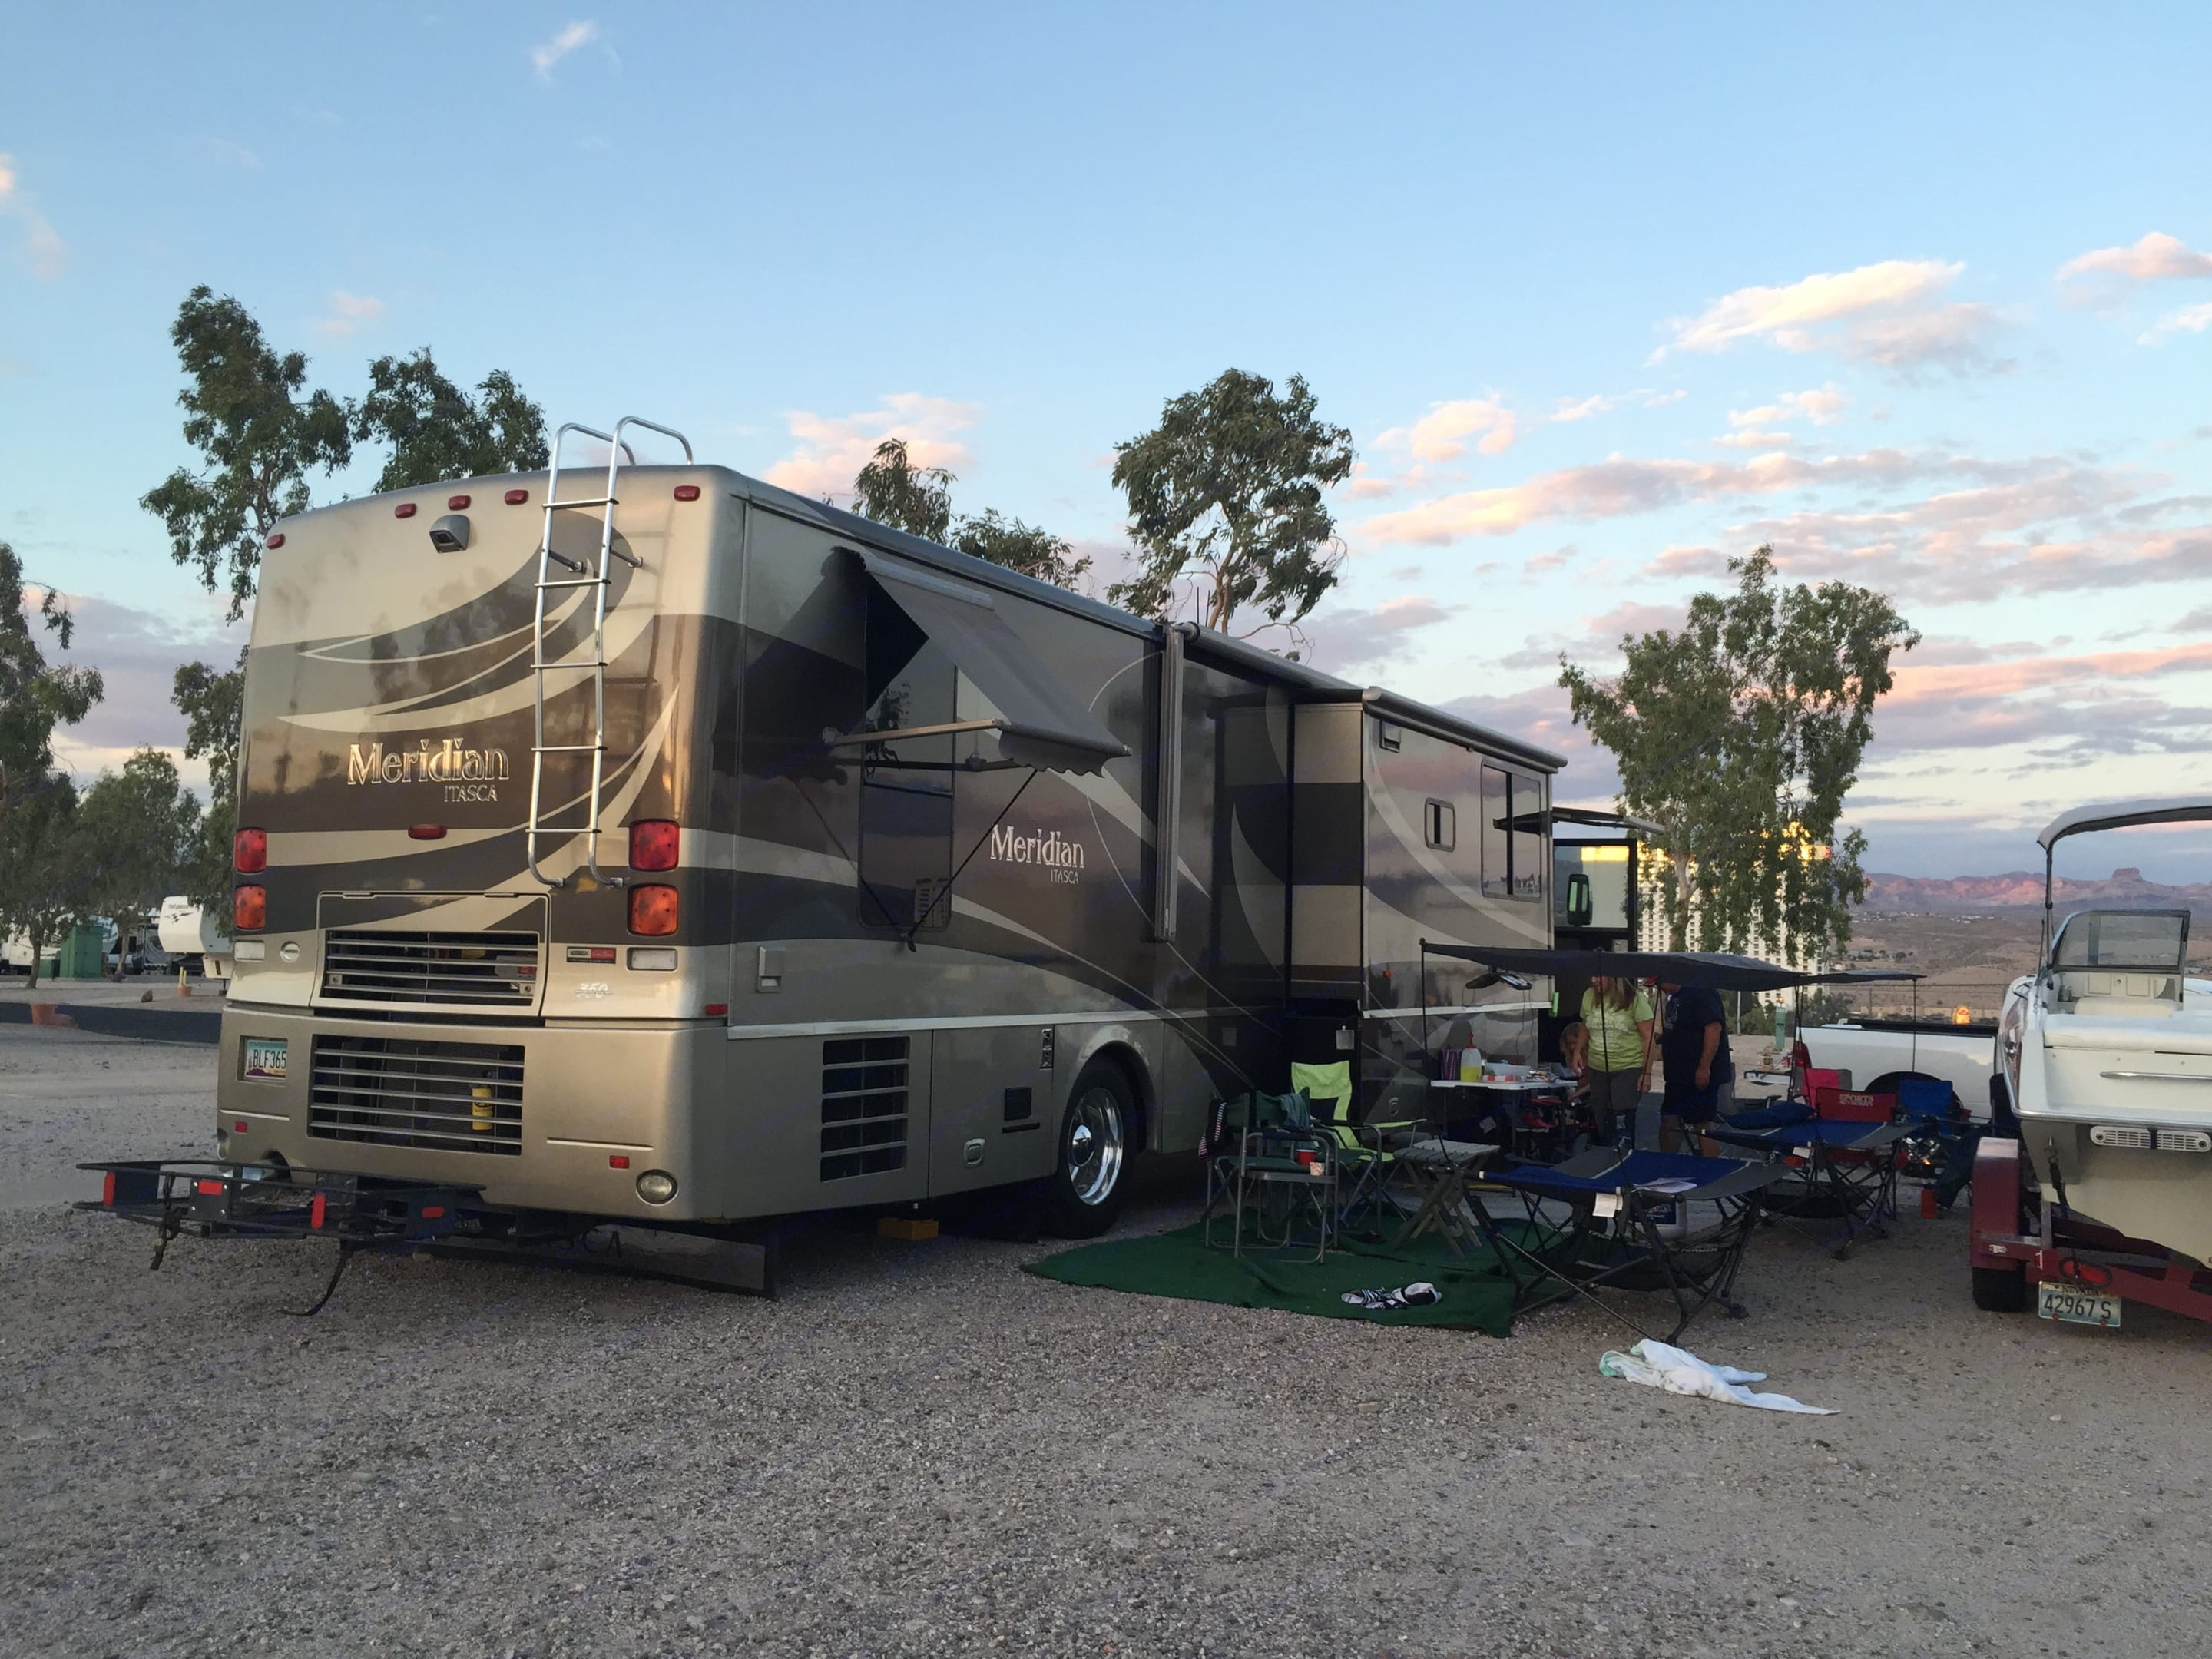 Shown without large 20 ft awning out. Rear has camera and towing hitch.. Itasca Meridian 2006